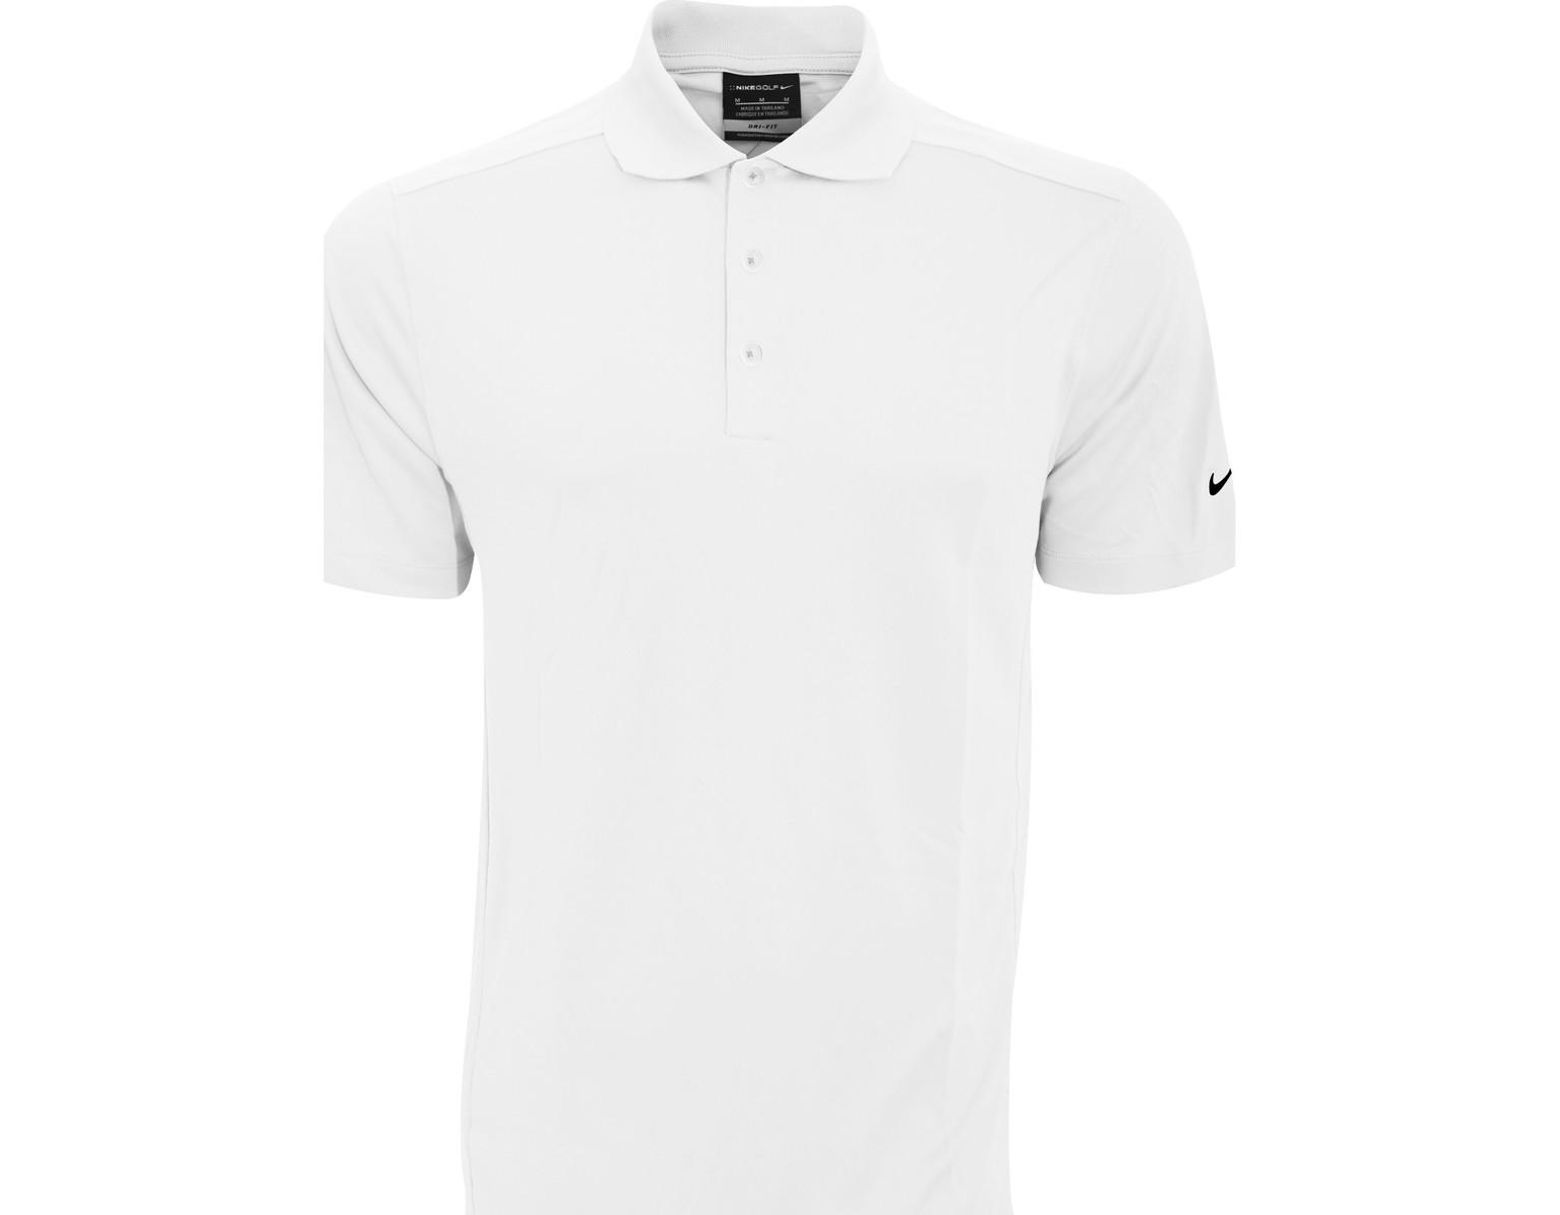 51881a97 Nike Golf Mens Smu Plain Solid Knit Short Sleeve Polo Shirt Men's Polo Shirt  In White in White for Men - Save 47% - Lyst